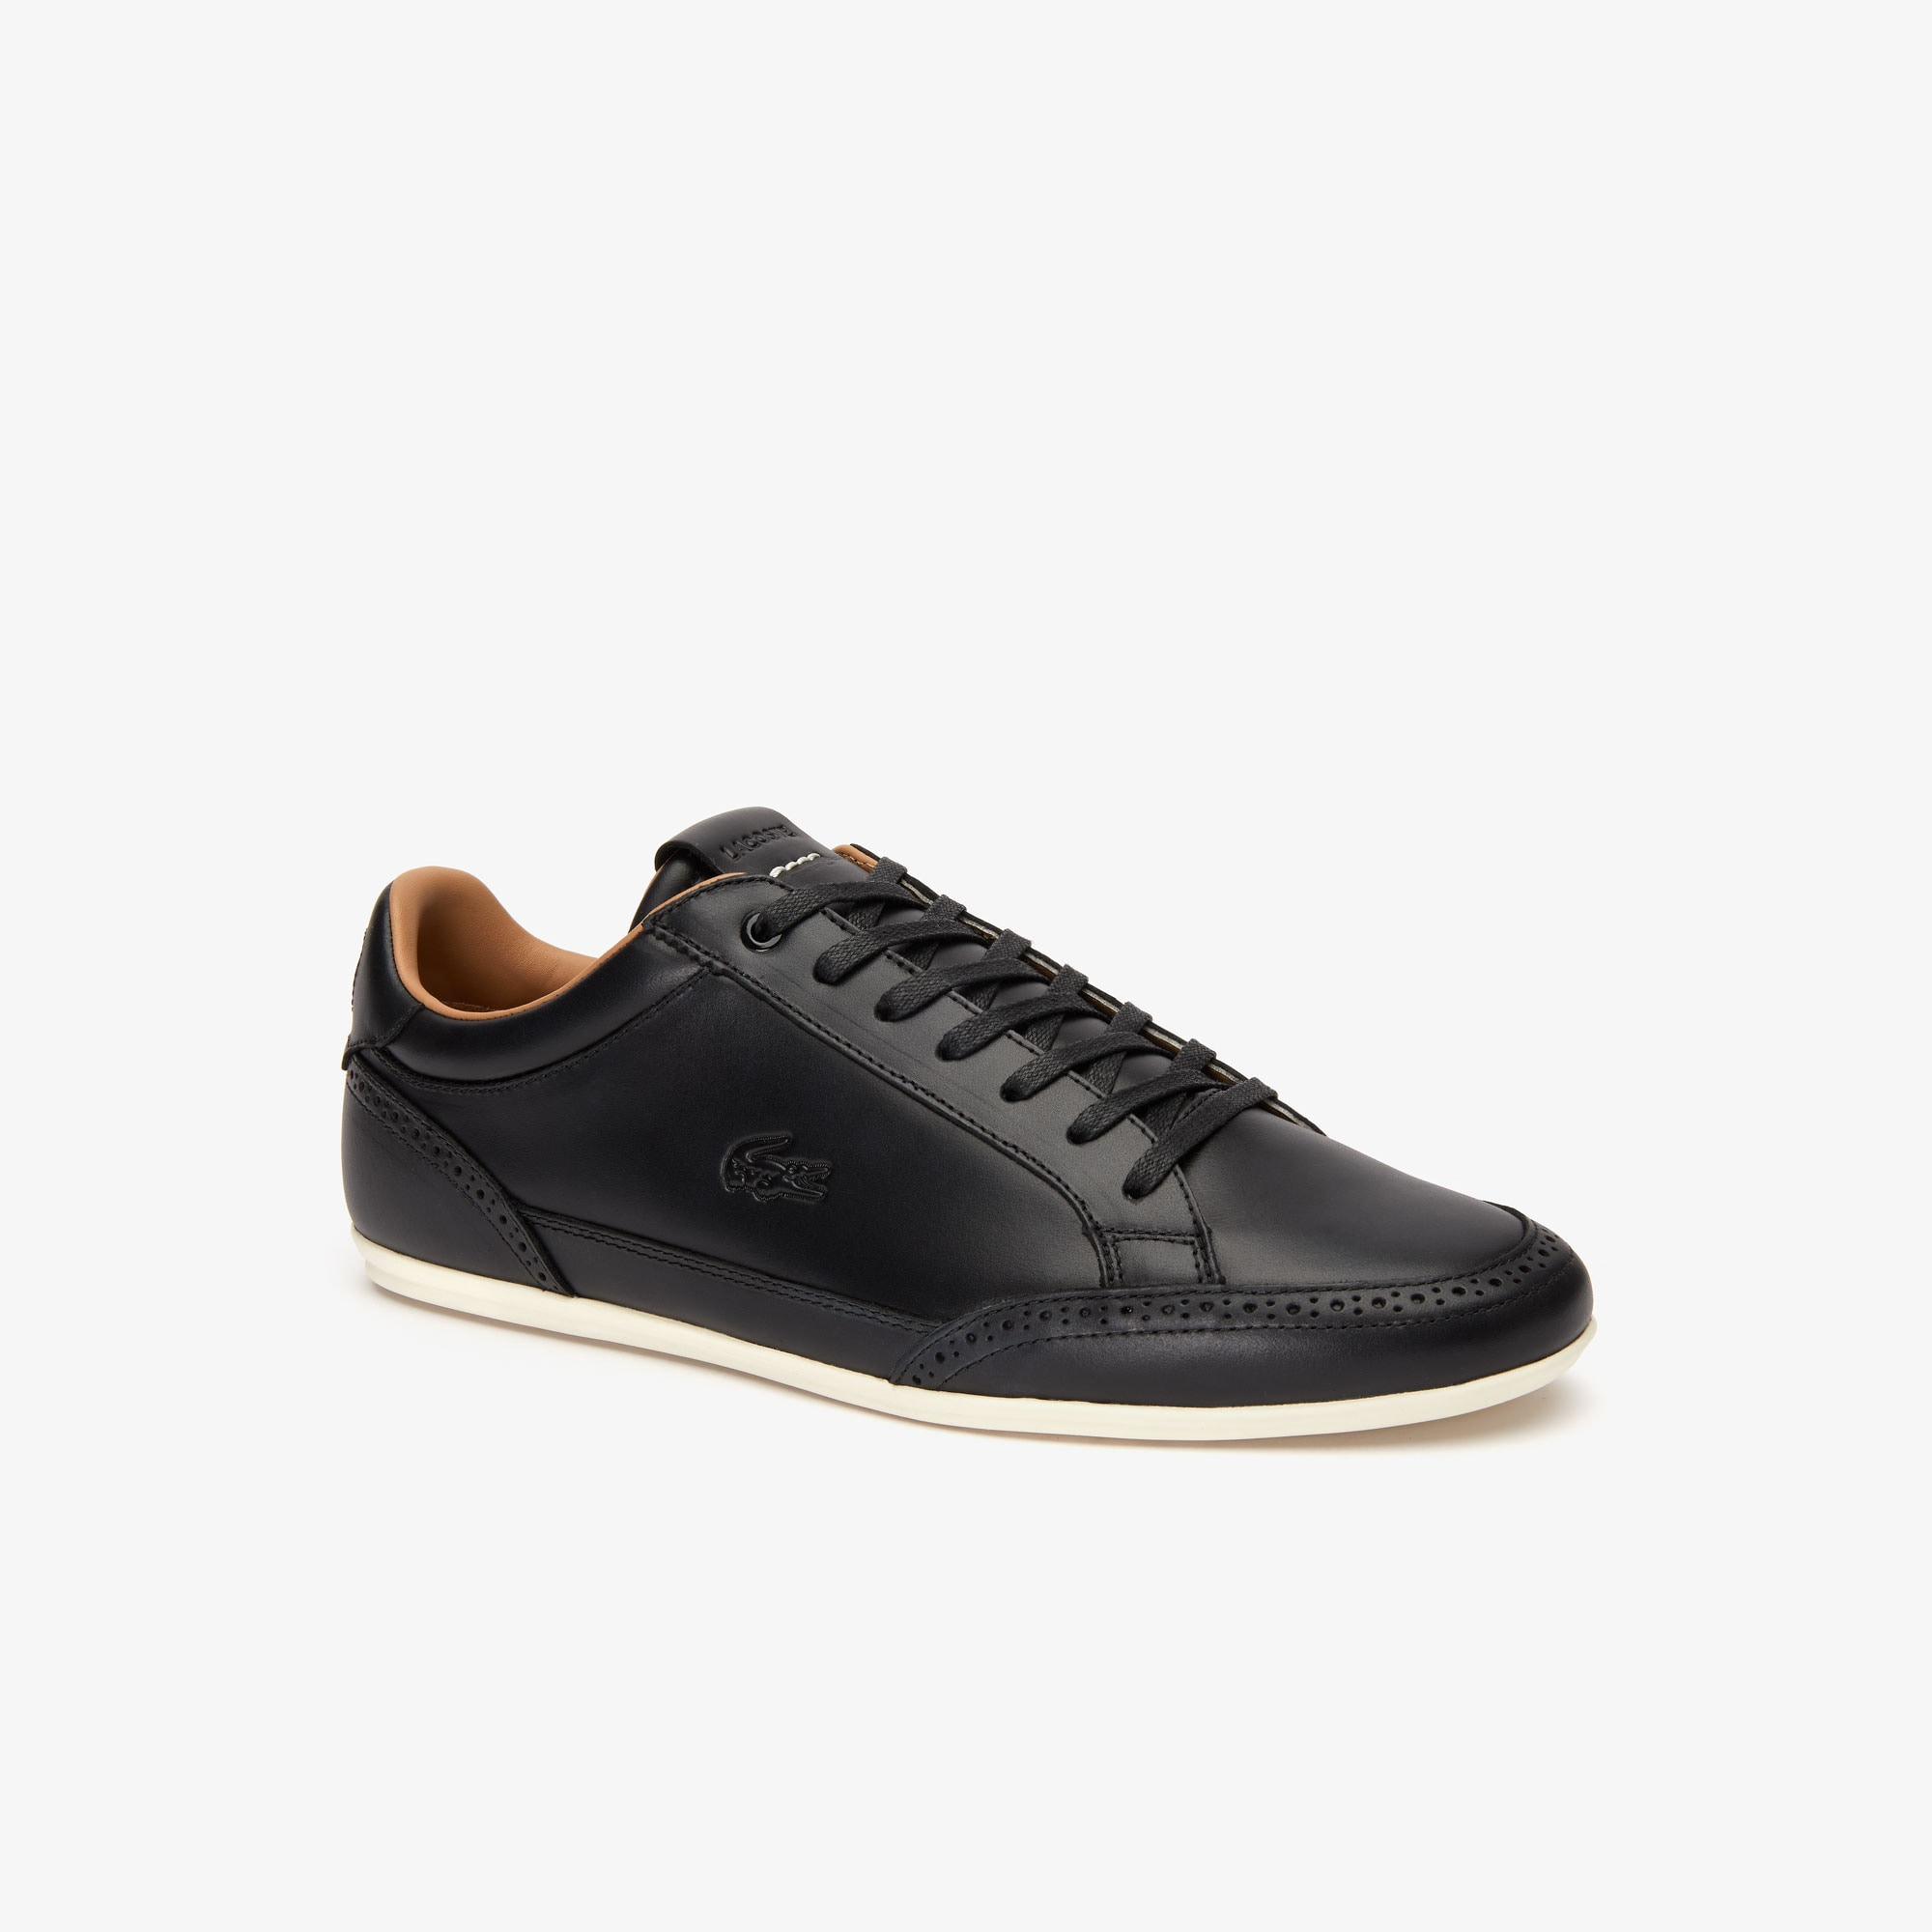 4a47f34205d5 Chaussures homme | Collection Homme | LACOSTE